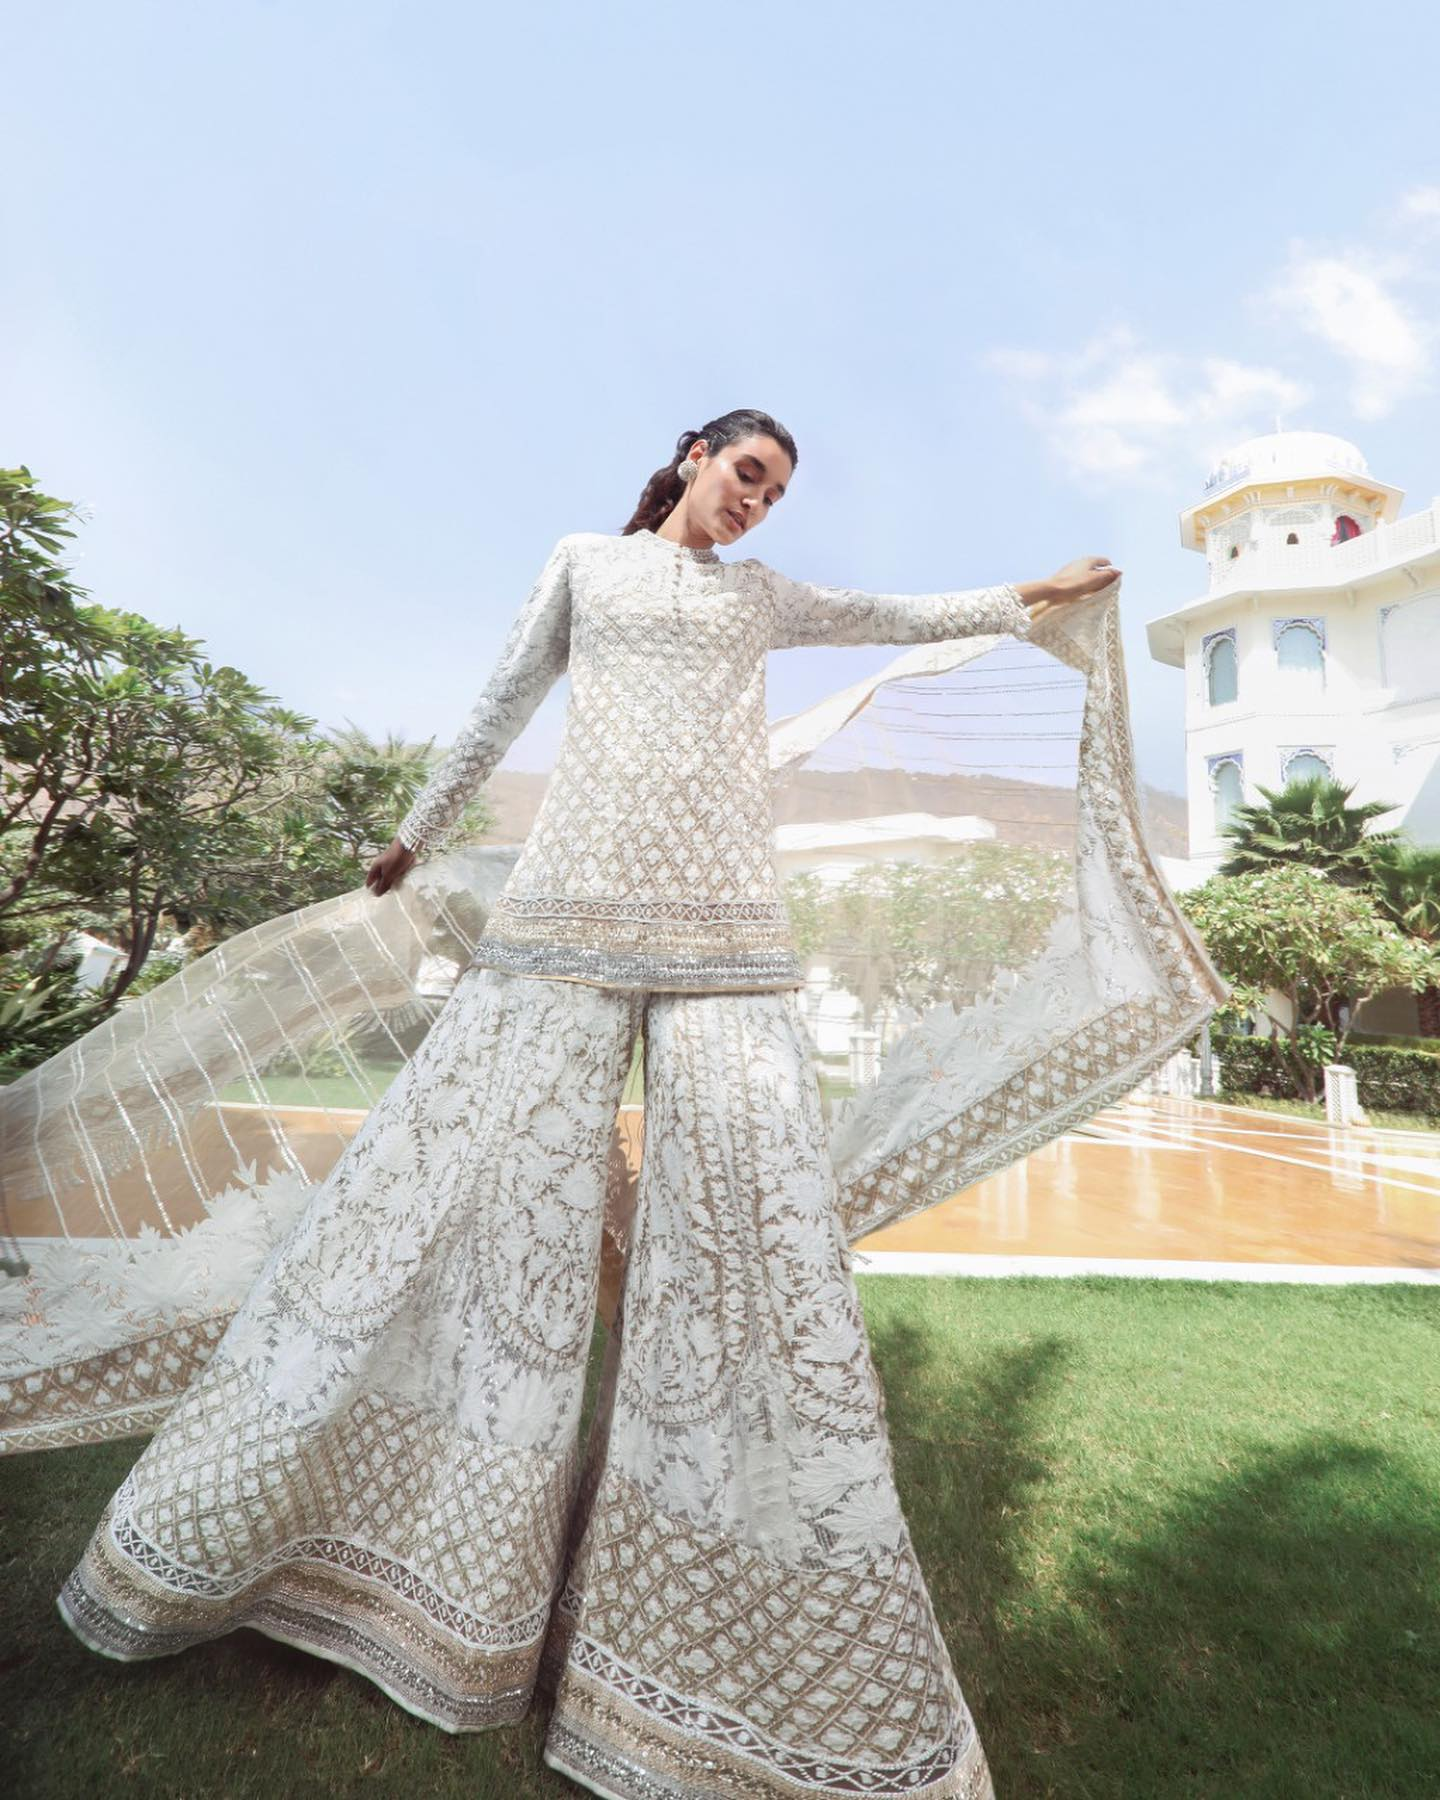 An ensemble that speaks all things gorgeous and glamour. Meticulous Kashmiri details the modern opulence of sequin textures scalloped ivory beaded rims on Manish Malhotra Sharara Kurti set memos all the elegant bolts of the #Nooraniyat realm! 2021-04-17